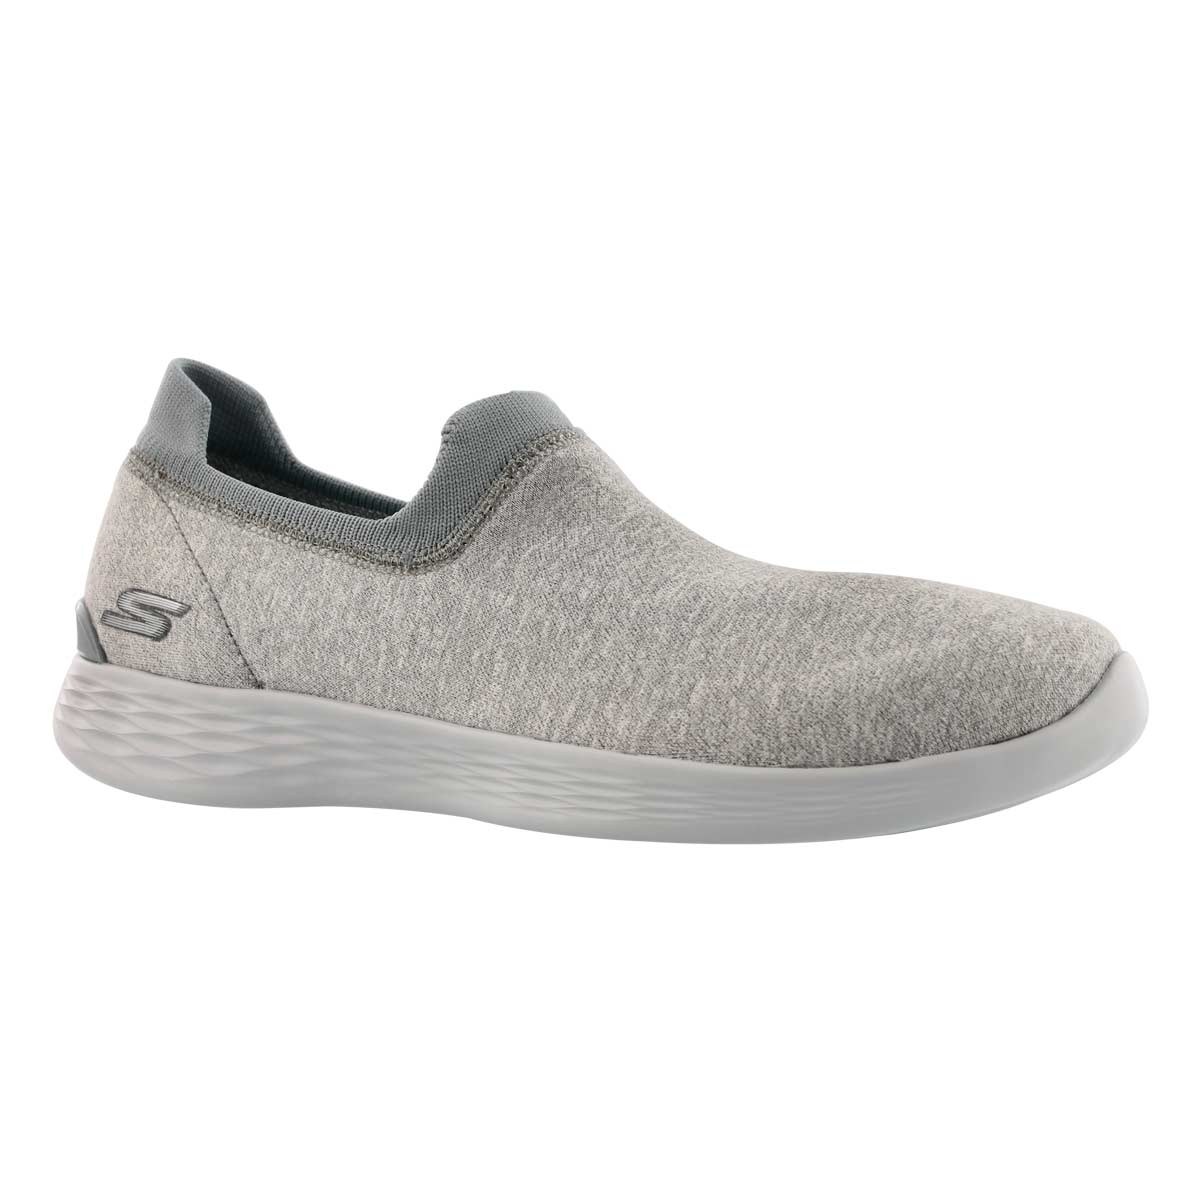 Lds YOU Define Perfection gry slip on